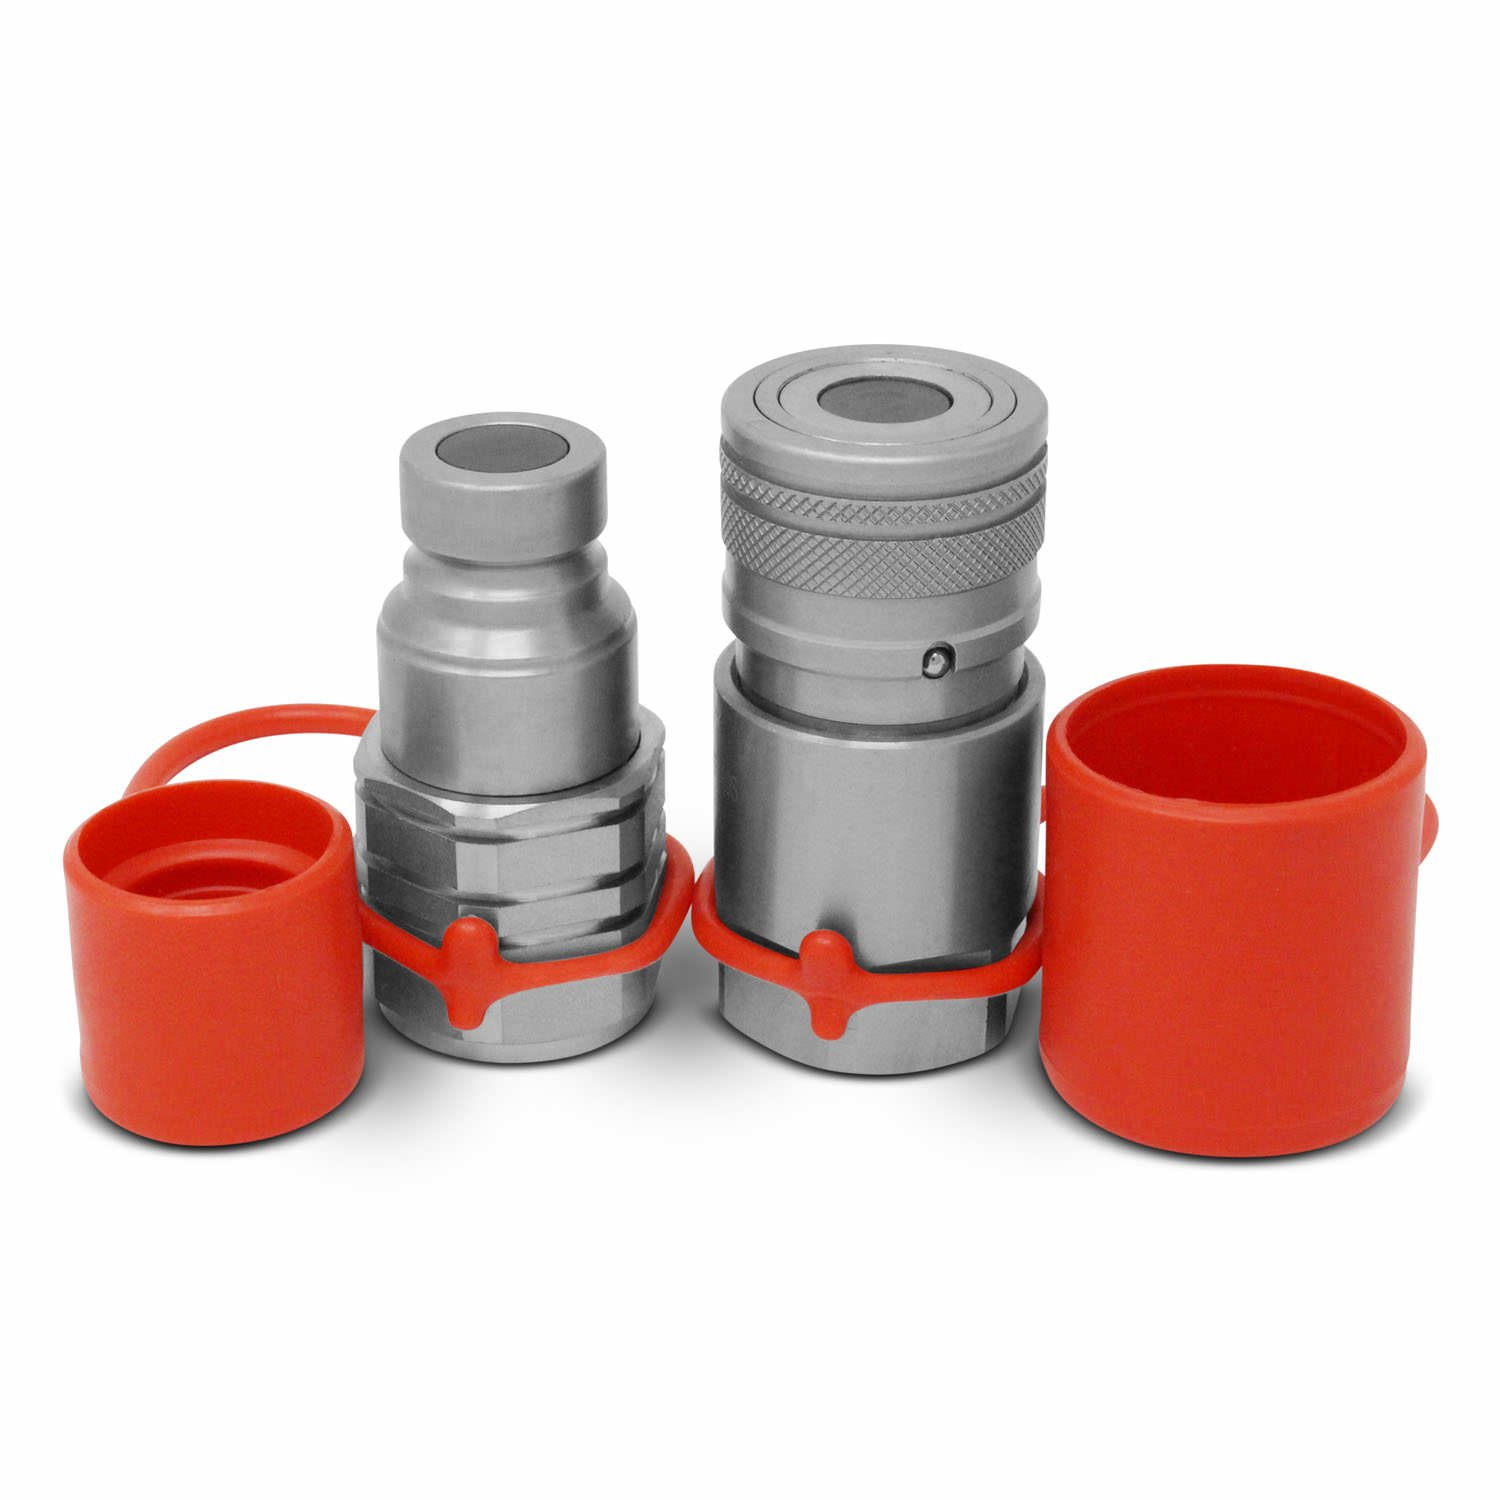 5/8'' SAE -10 Flat Face Hydraulic Quick Connect Couplers / Couplings Set with Dust Caps by Summit Hydraulics